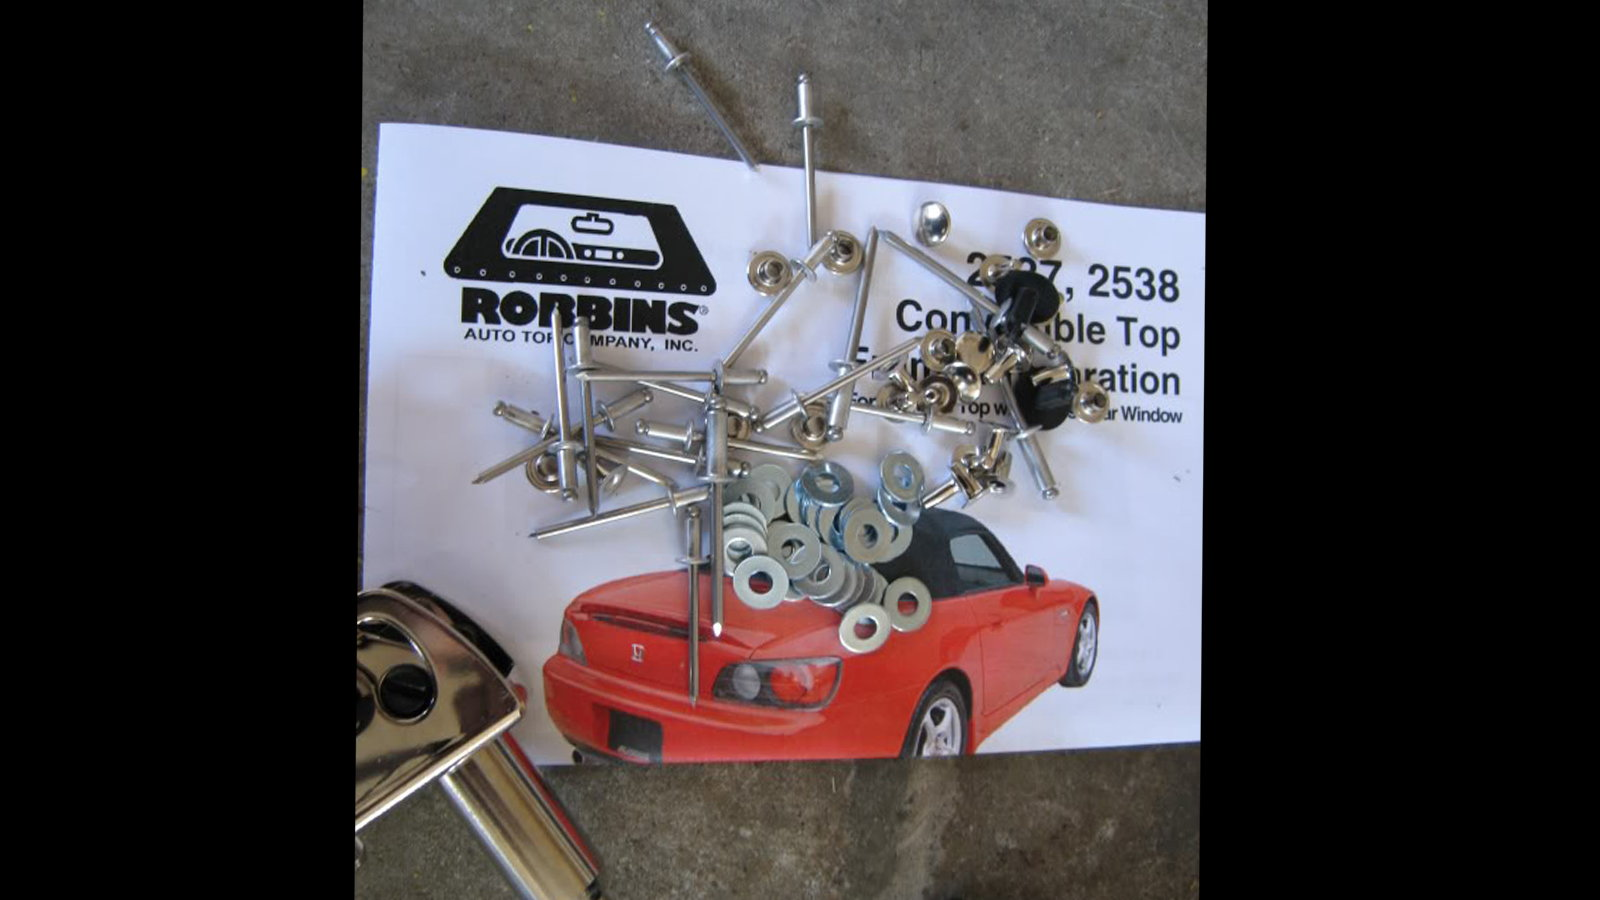 Installing a Robbins Top for Your Convertible - Part Two, The Install